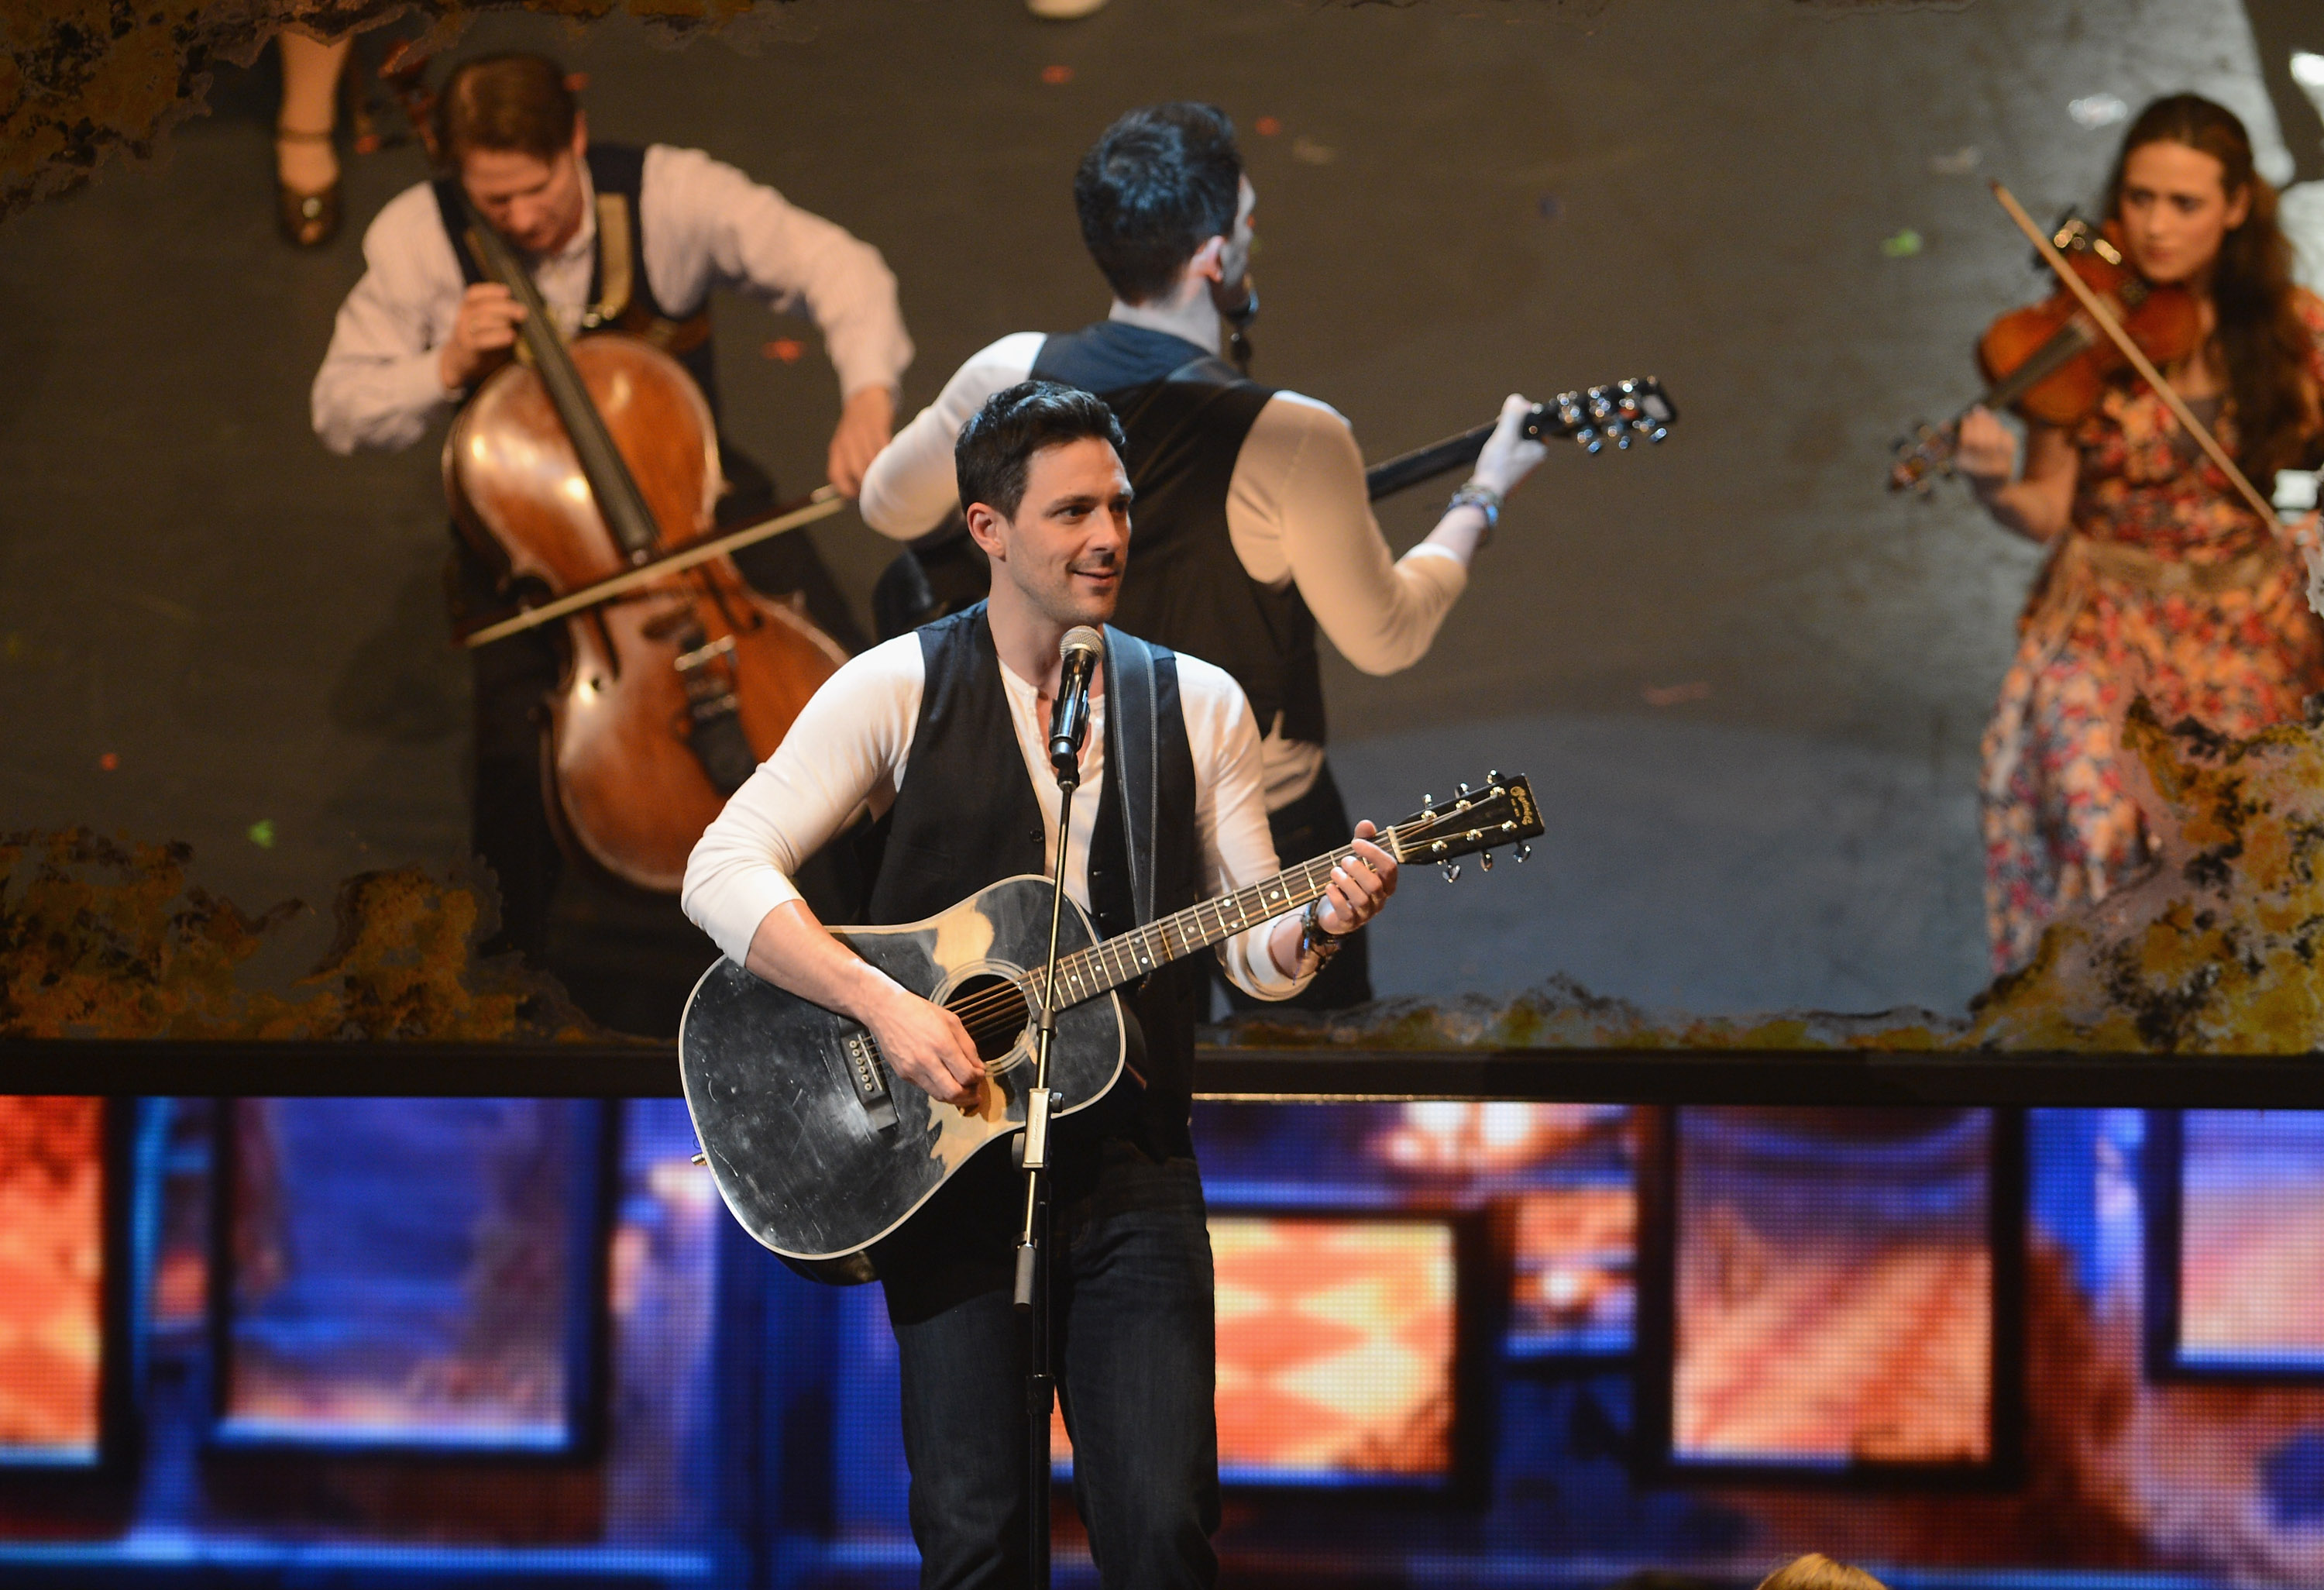 NEW YORK, NY - JUNE 10: Steve Kazee performs on stage with the cast of 'Once the Musical' onstage at the 66th Annual Tony Awards at The Beacon Theatre on June 10, 2012 in New York City. (Photo by Andrew H. Walker/WireImage for Tony Awards Productions)